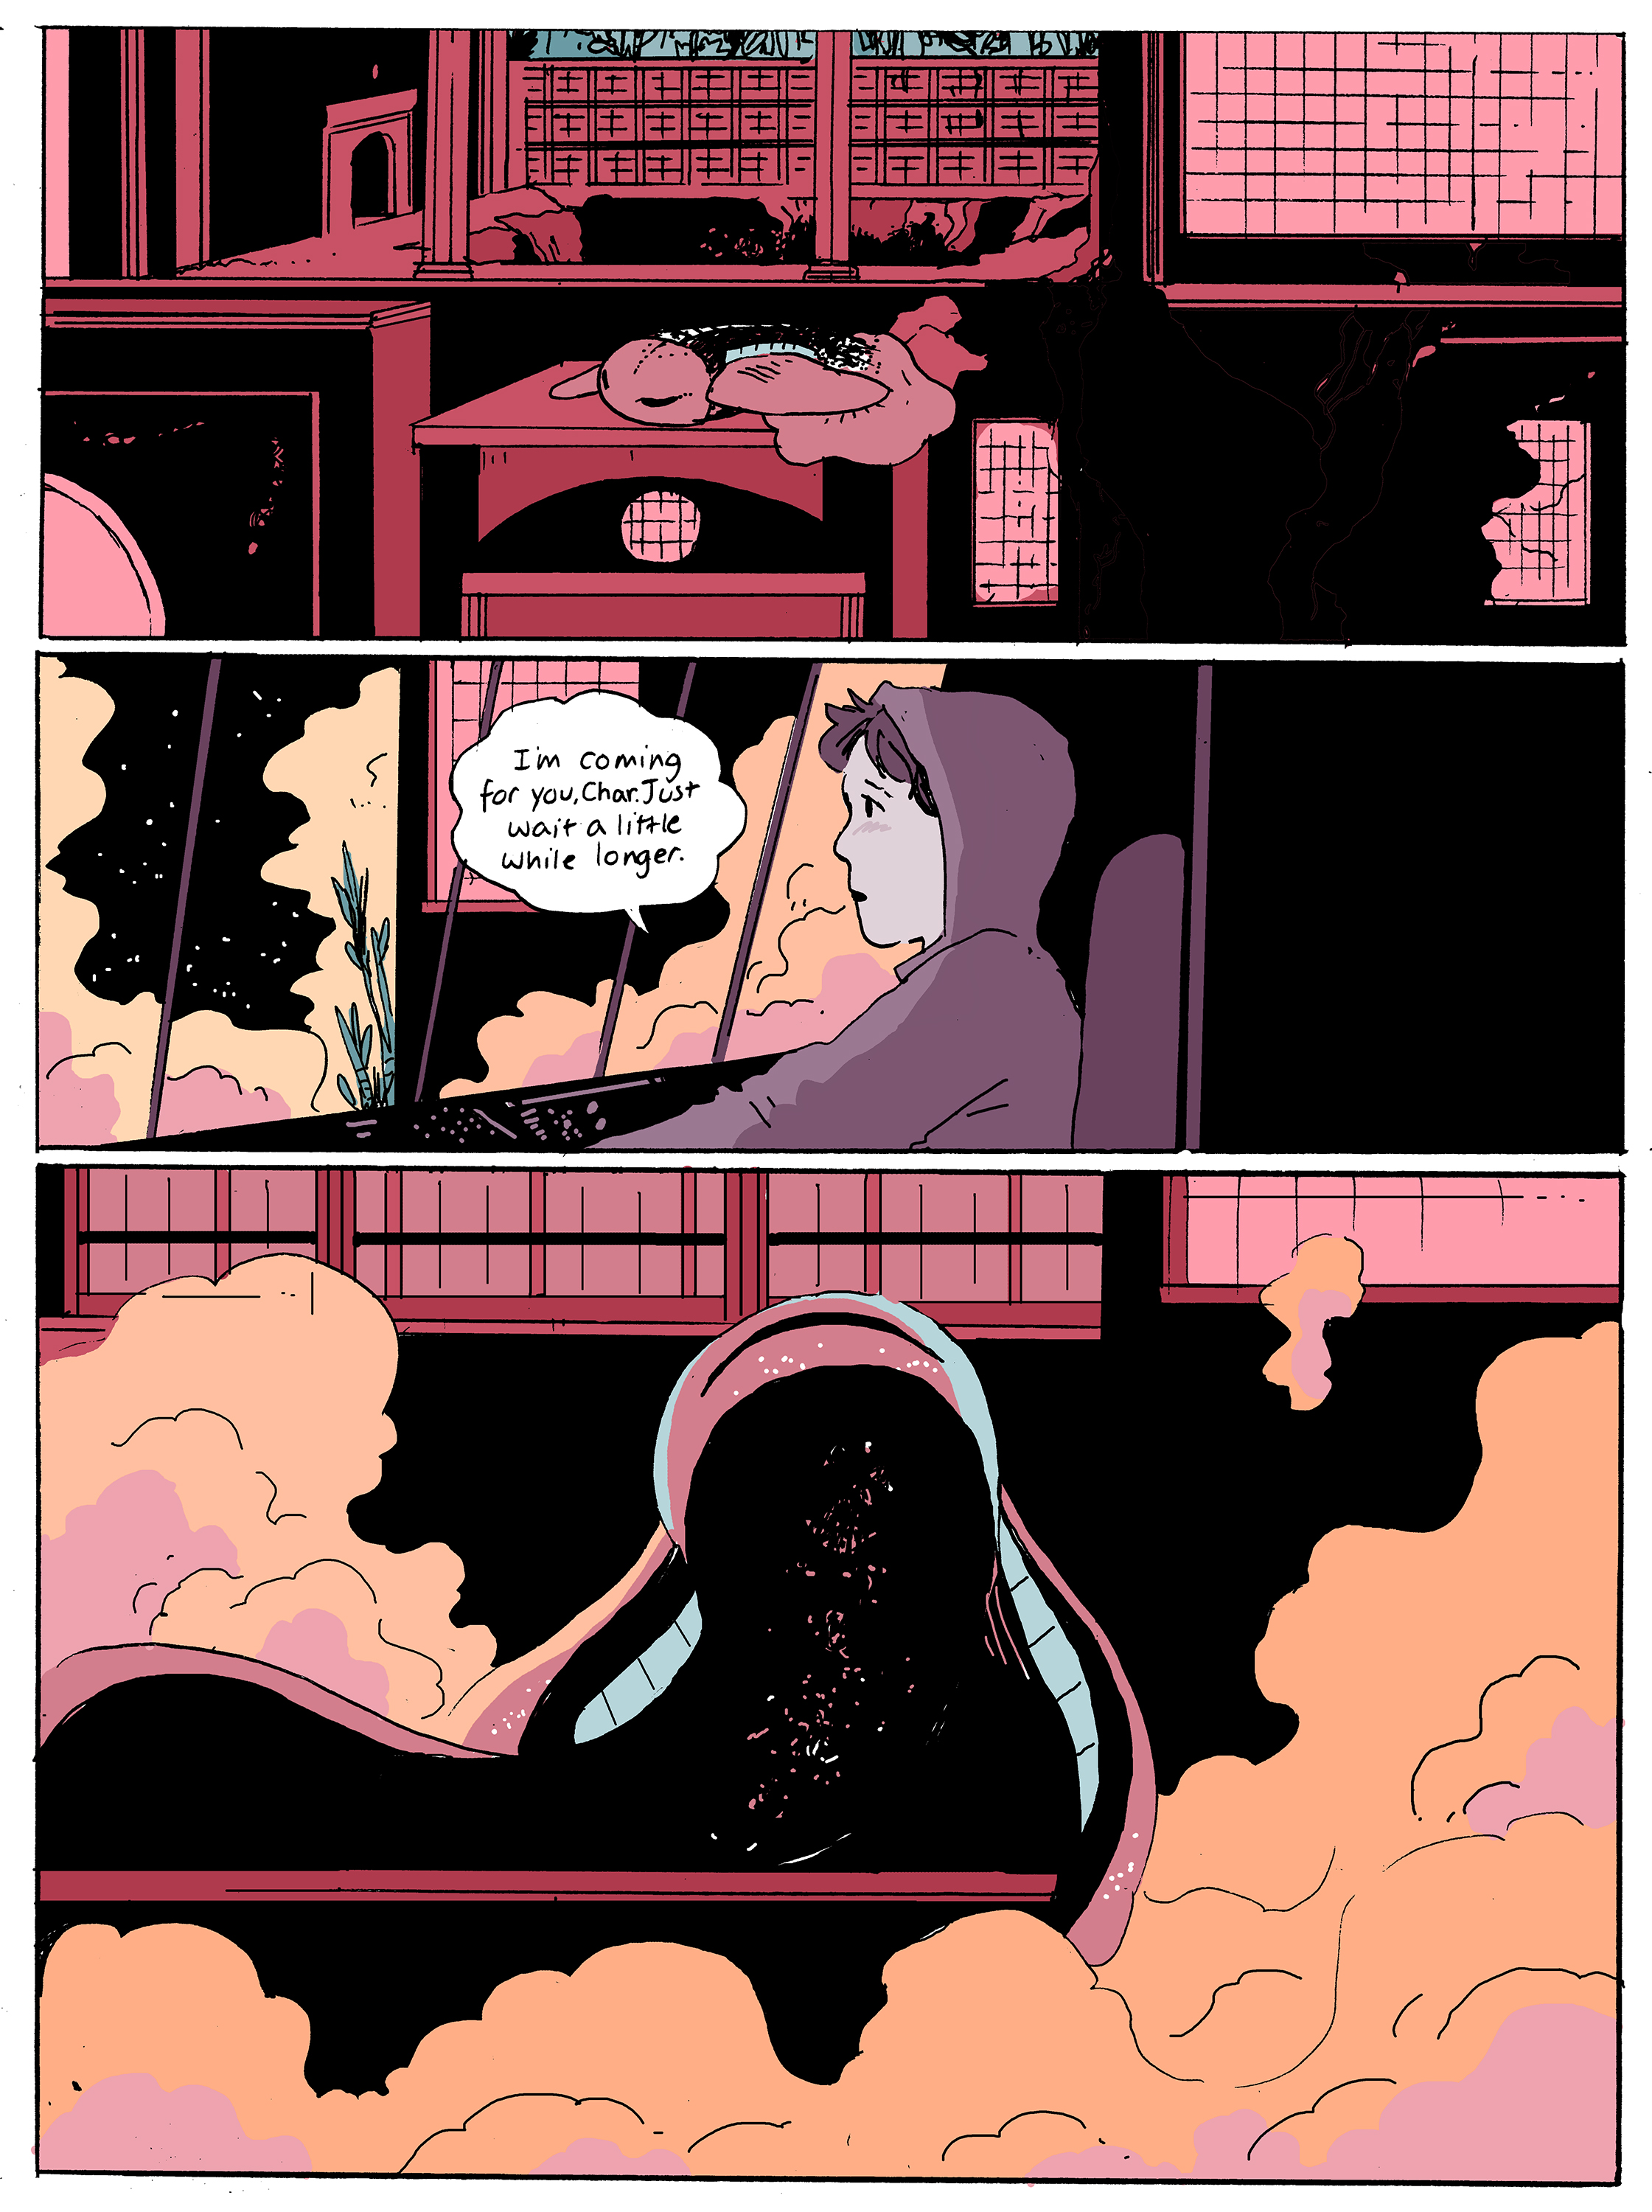 chapter13_page13.jpg